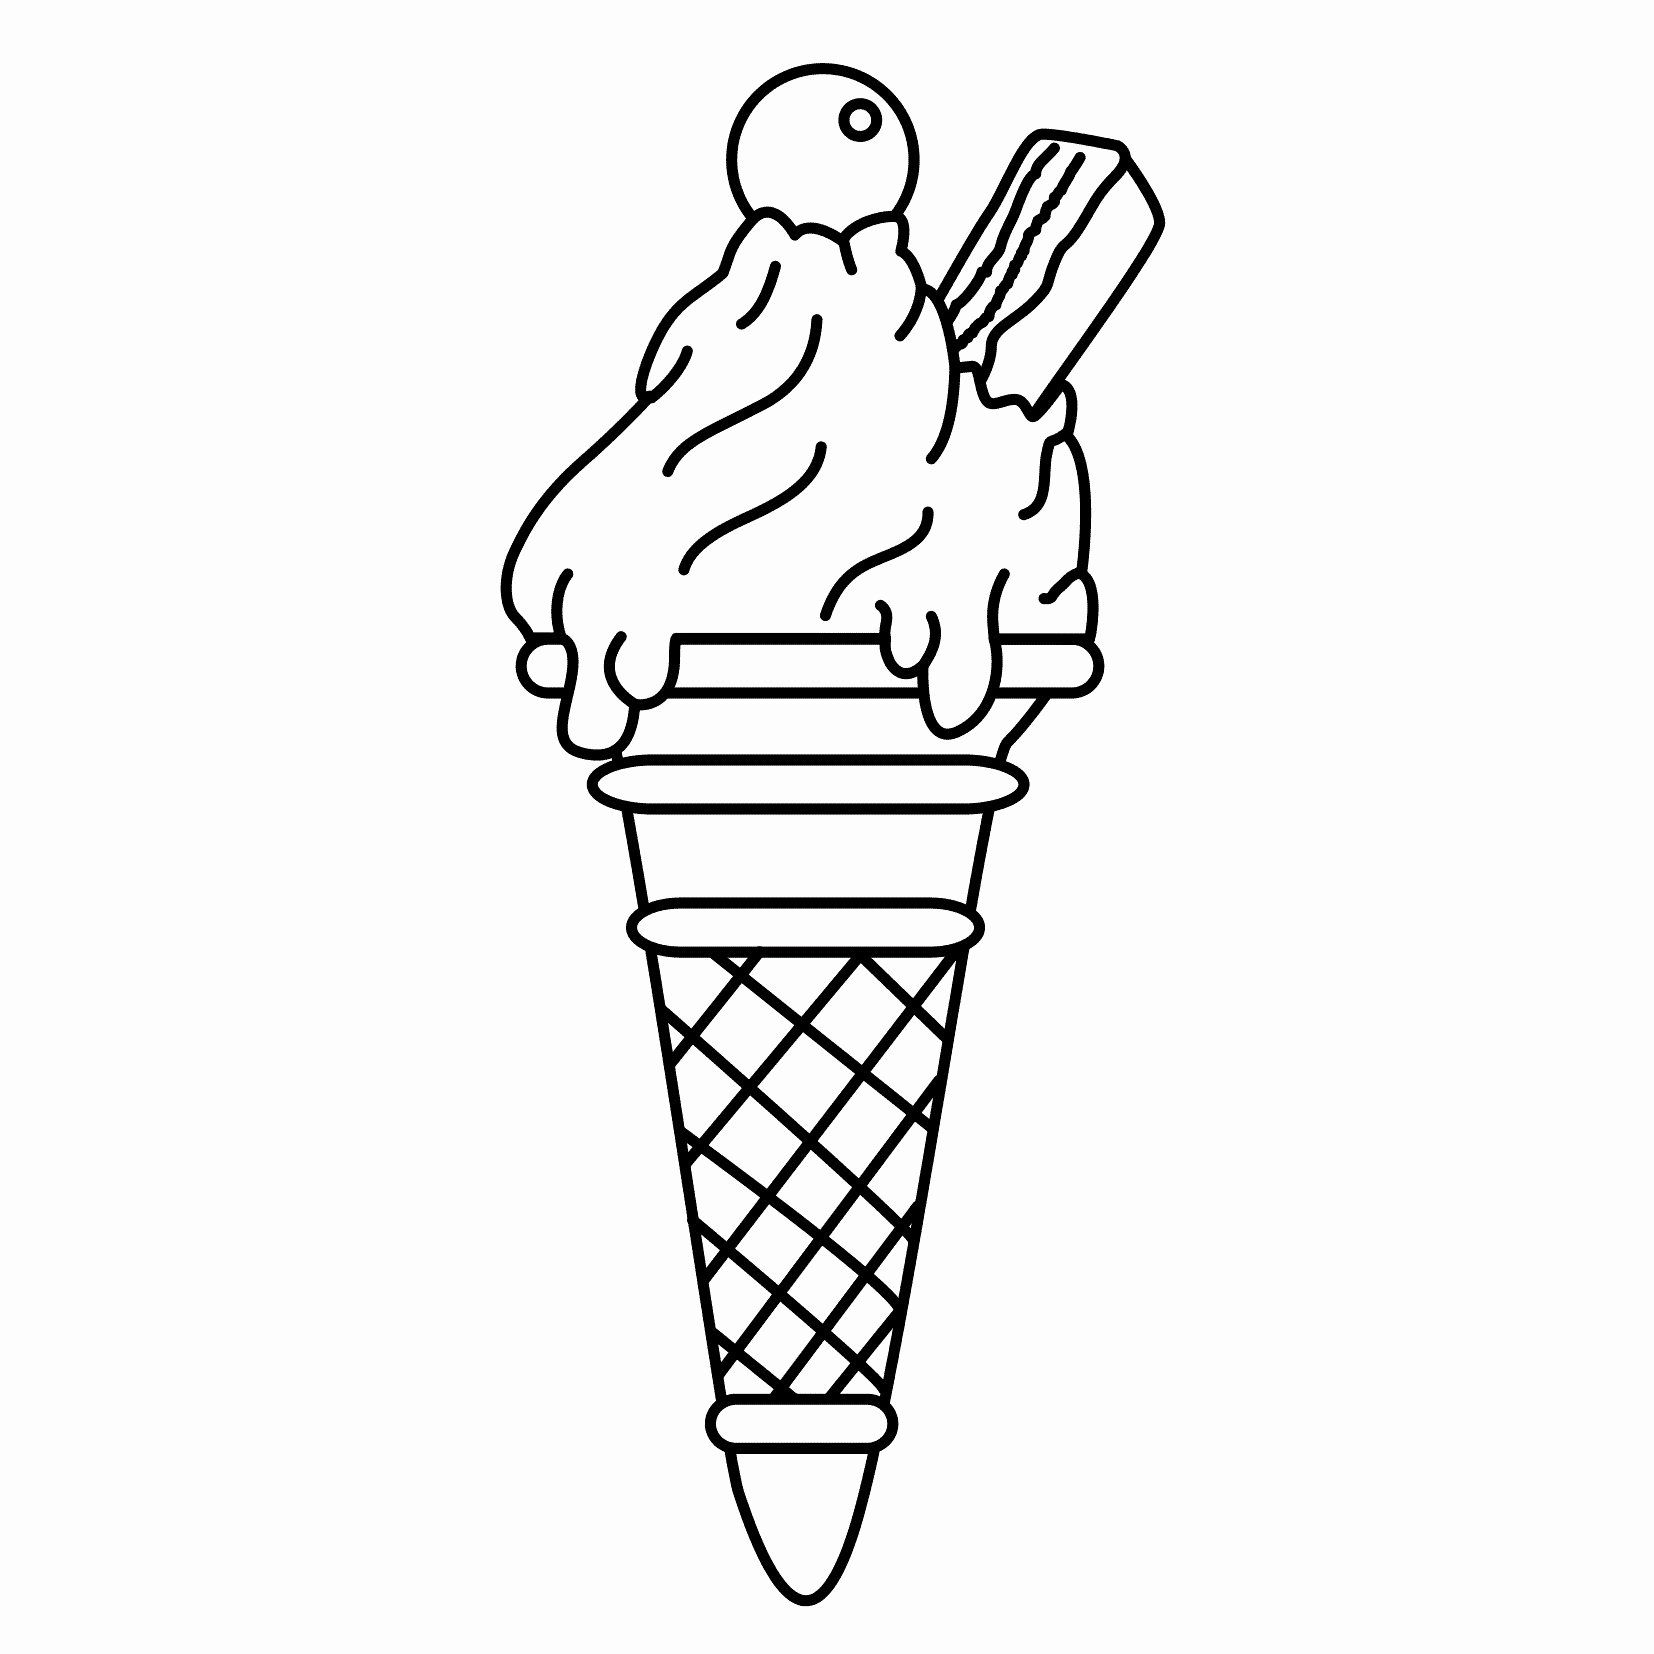 Icecream Cone Coloring Page Inspirational Free Printable Ice Cream